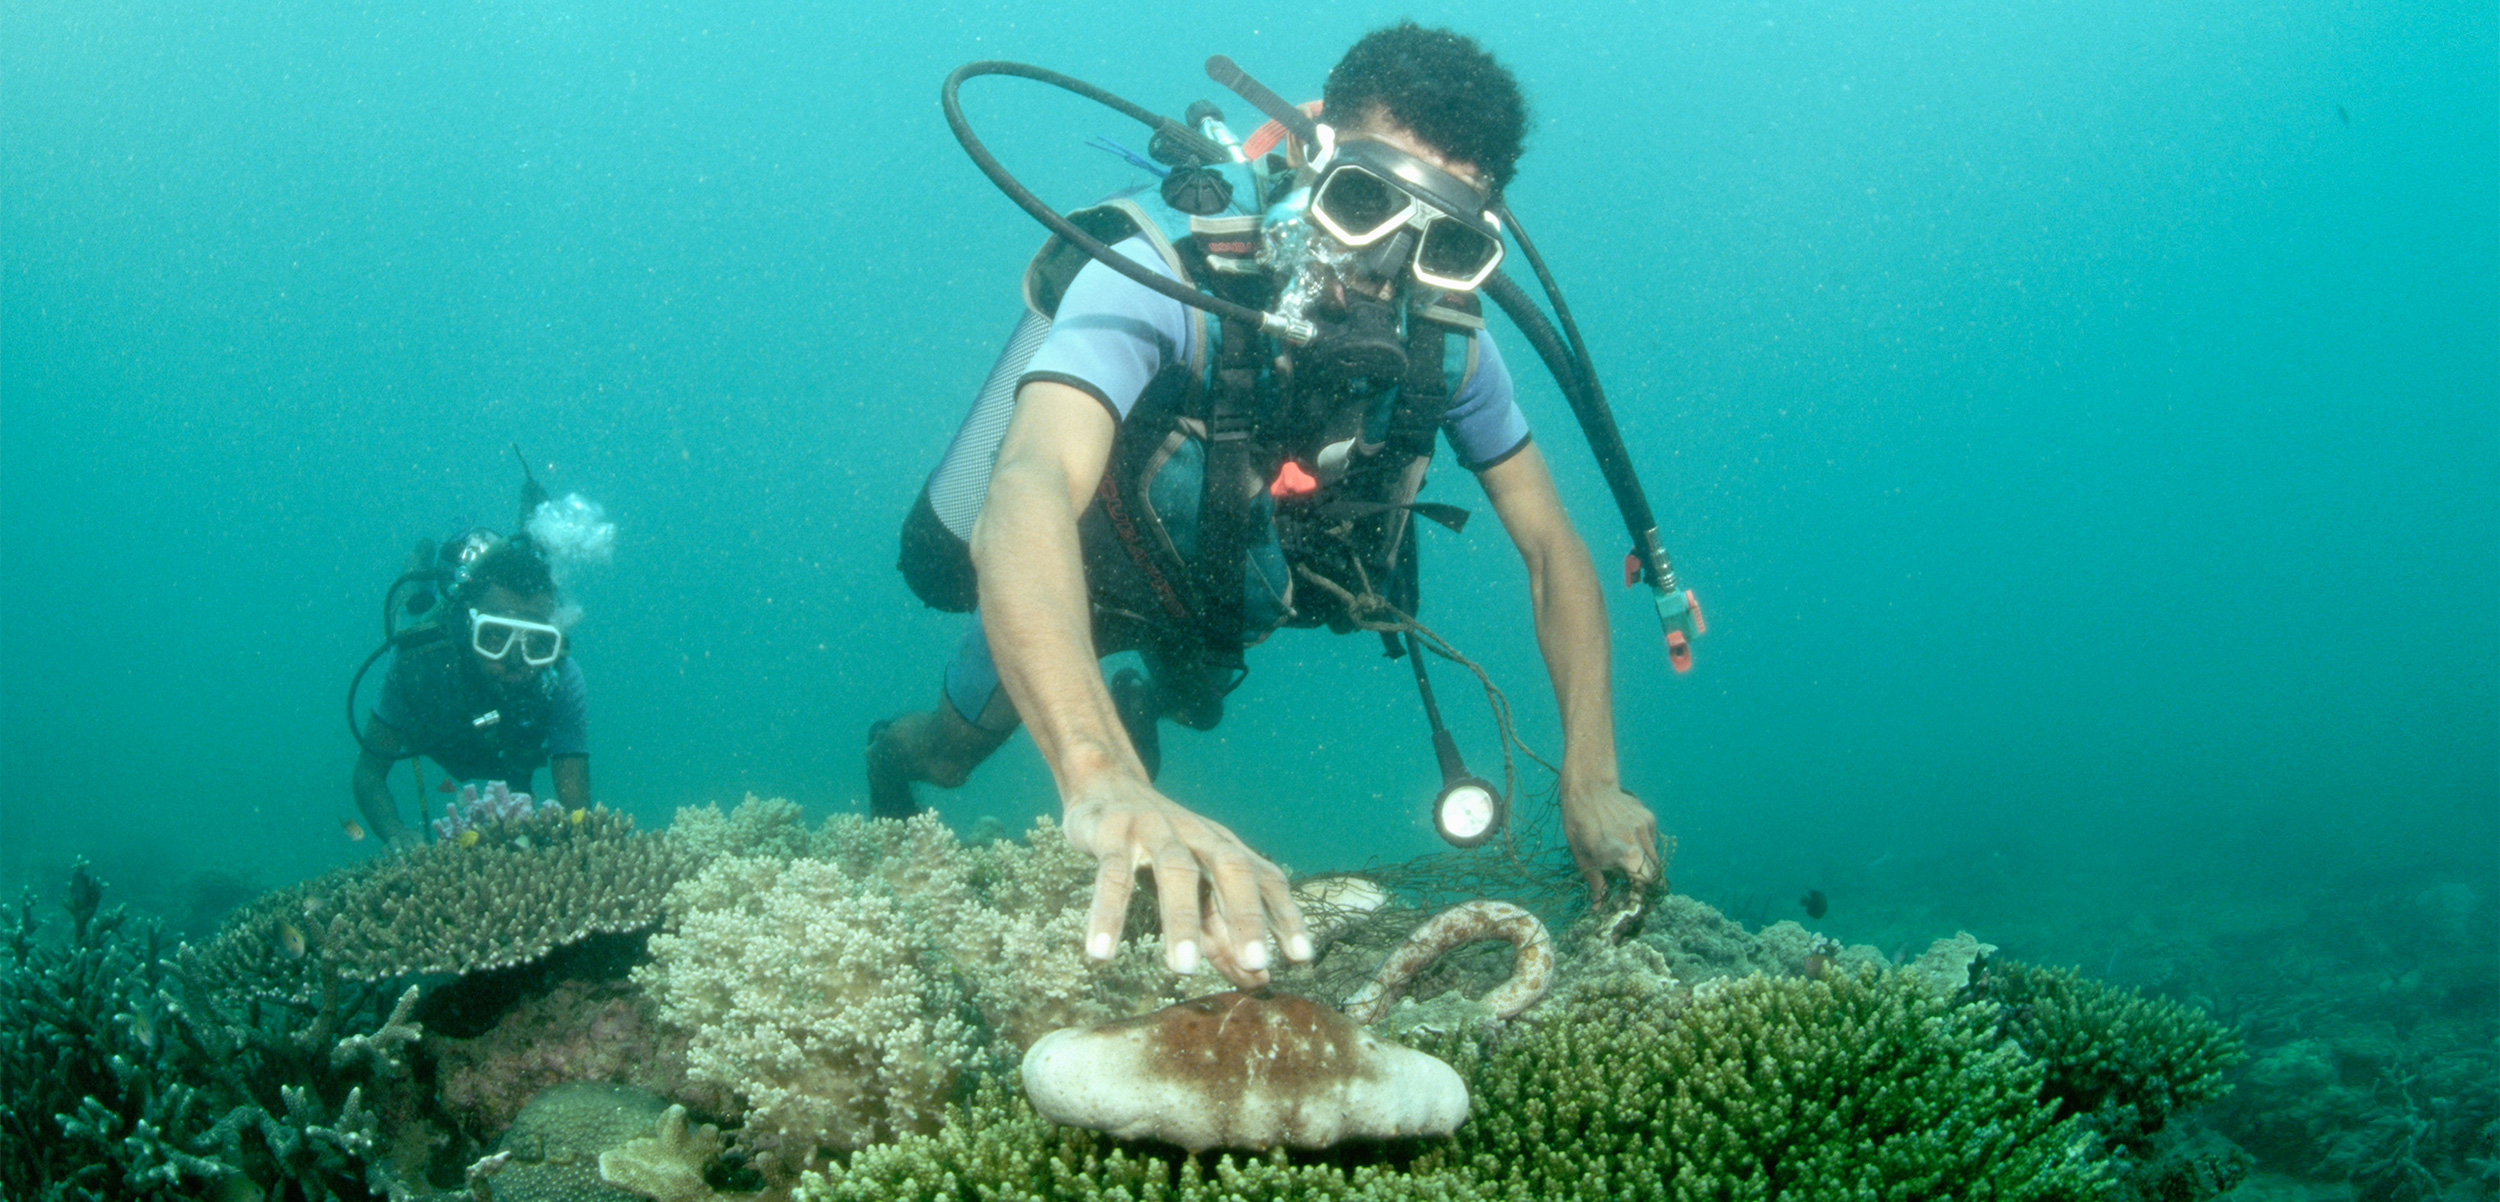 The global harvest of sea cucumbers has skyrocketed over the past three decades, and in many places, the fishery quickly collapses from over-exploitation. Photo by Arne Hodalic/Corbis